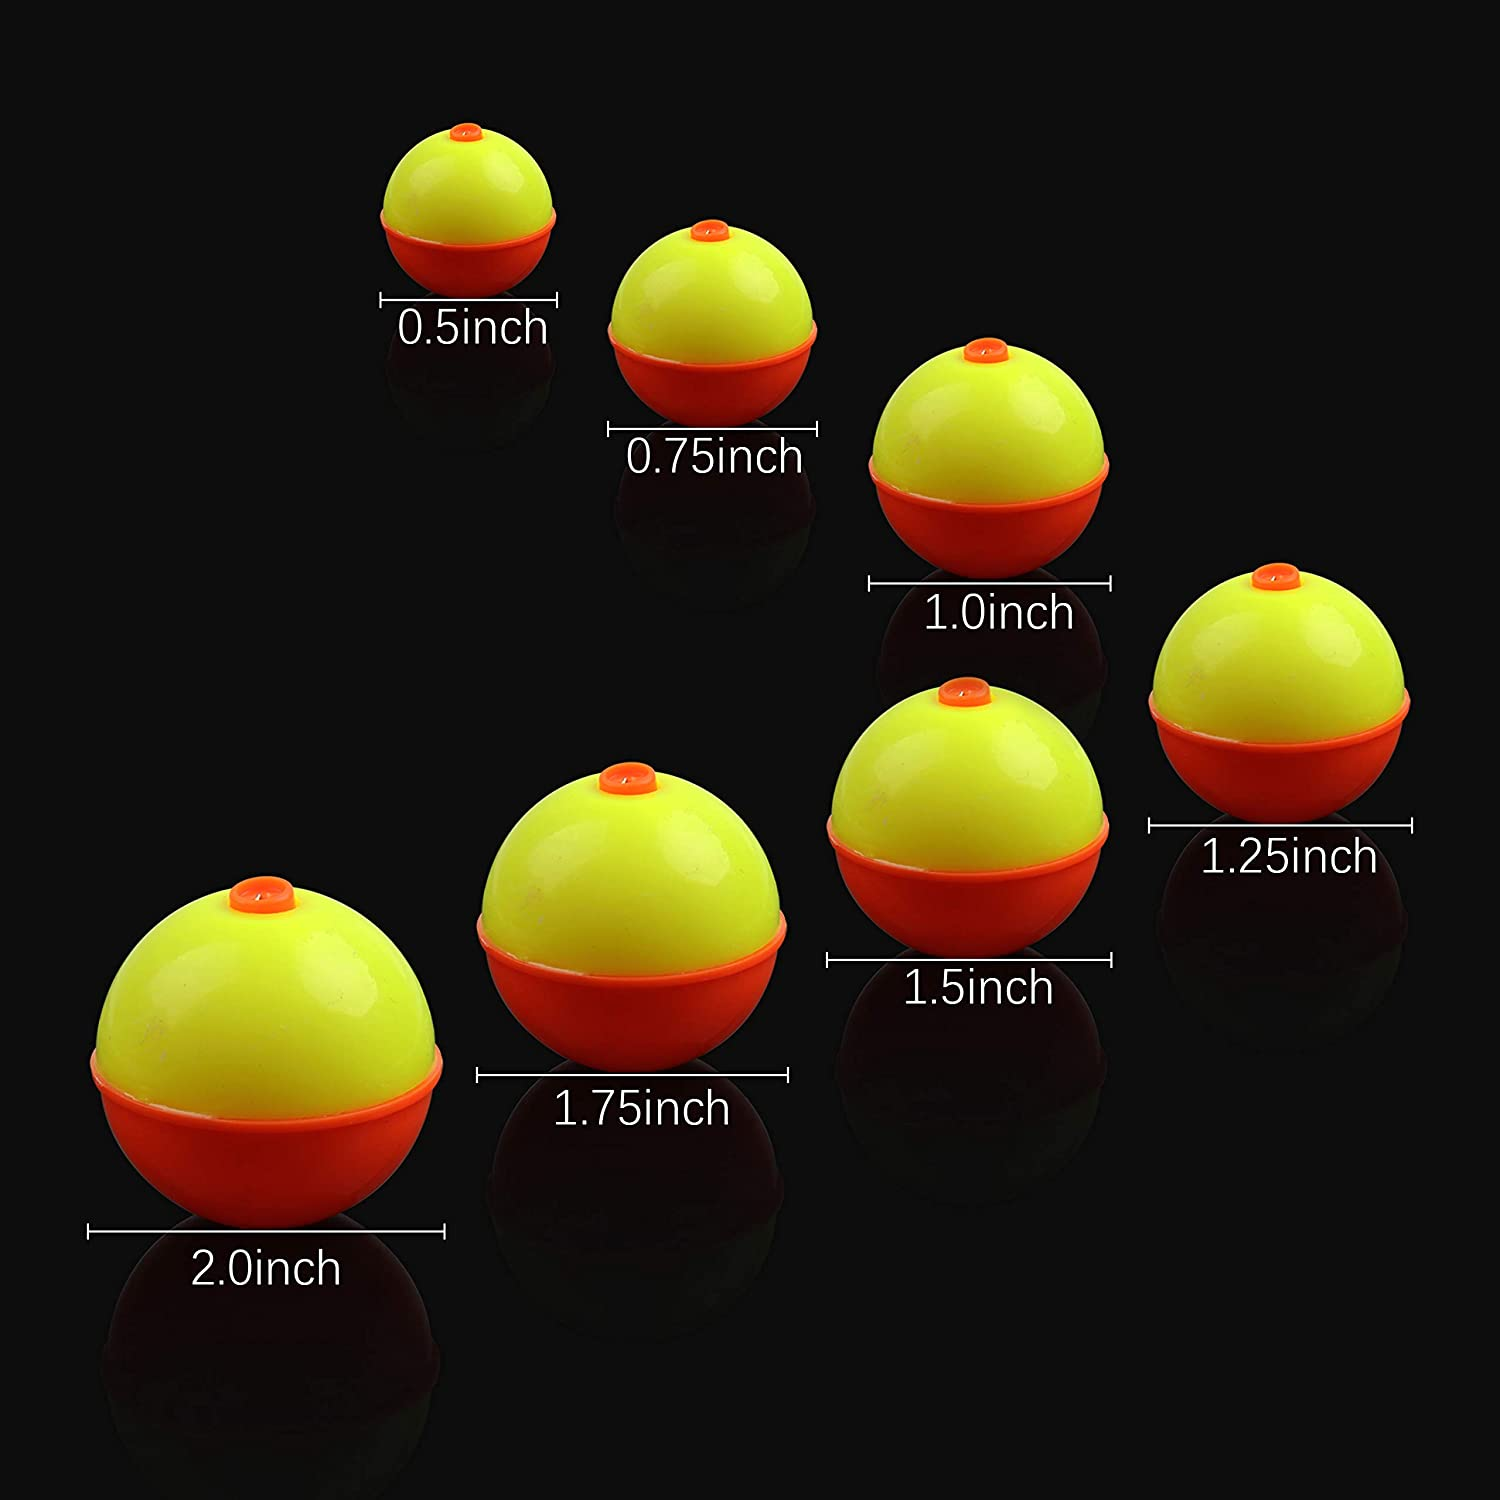 Fishing Bobbers Floats Set Snap-on Red Yellow Float Bobbers Push Button Round Buoy Floats Fishing Tackle Accessories 7sizes Available